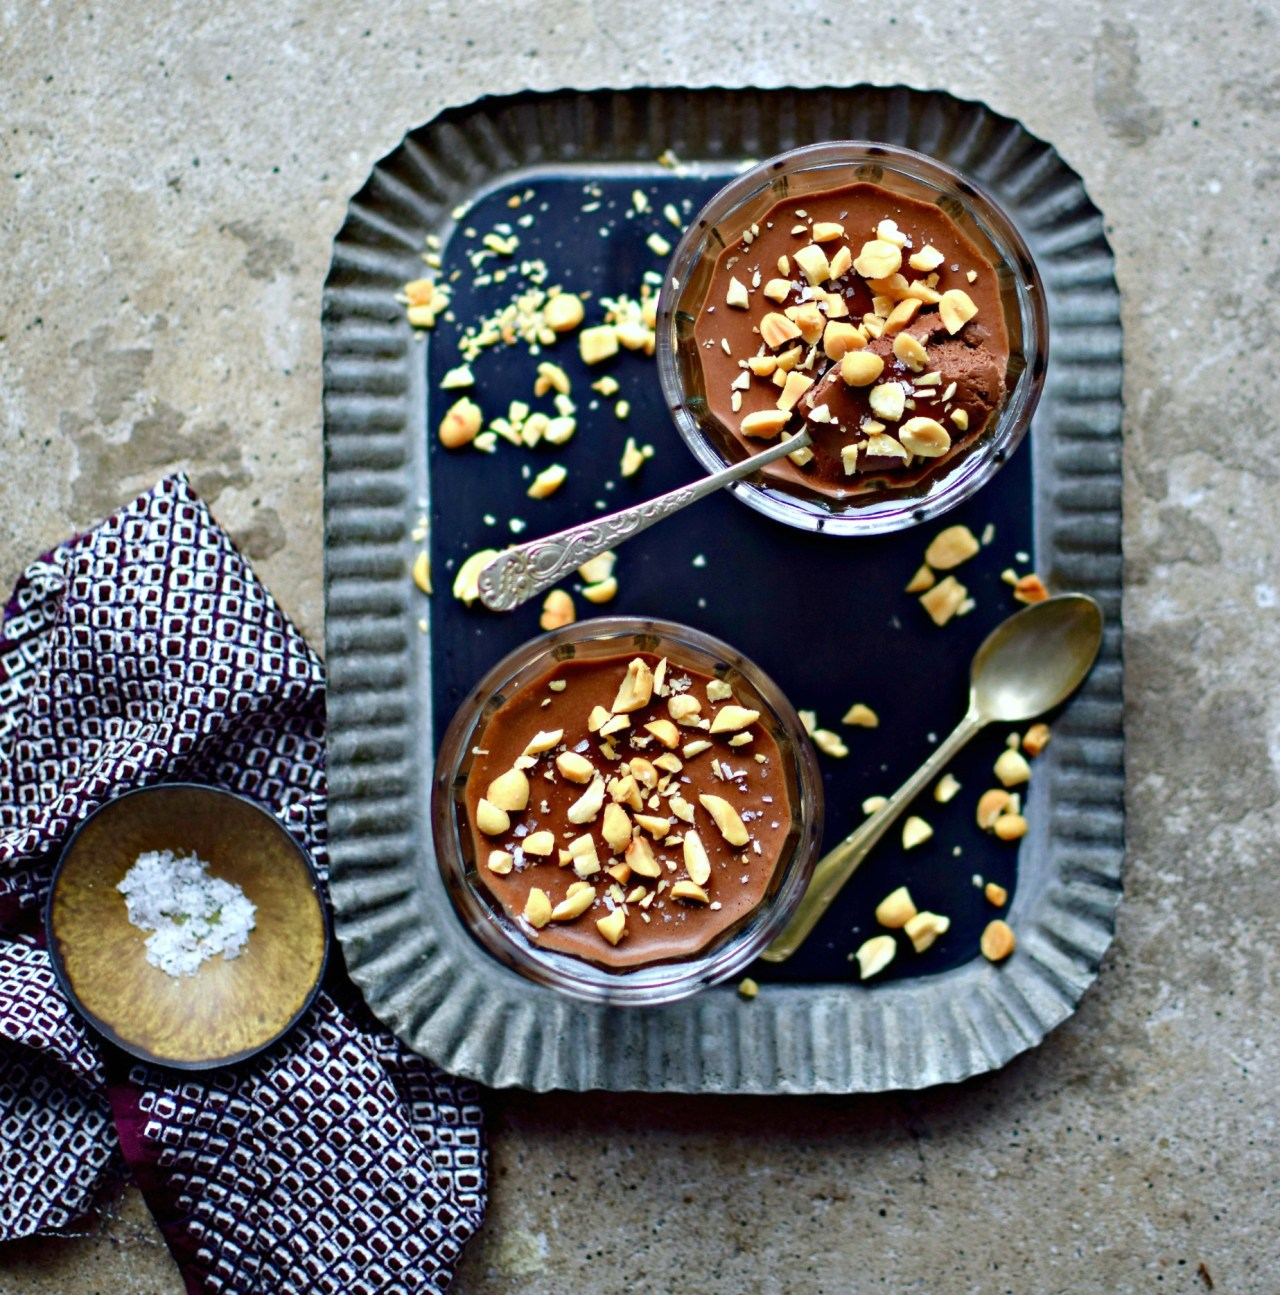 A slightly sweet, vegan chocolate mousse made with aquafaba and protein-packed peanut butter powder. Easy, light and perfect for a family or special occasion dessert. Top with crushed salted peanuts or pretzels for a flavour and texture contrast.